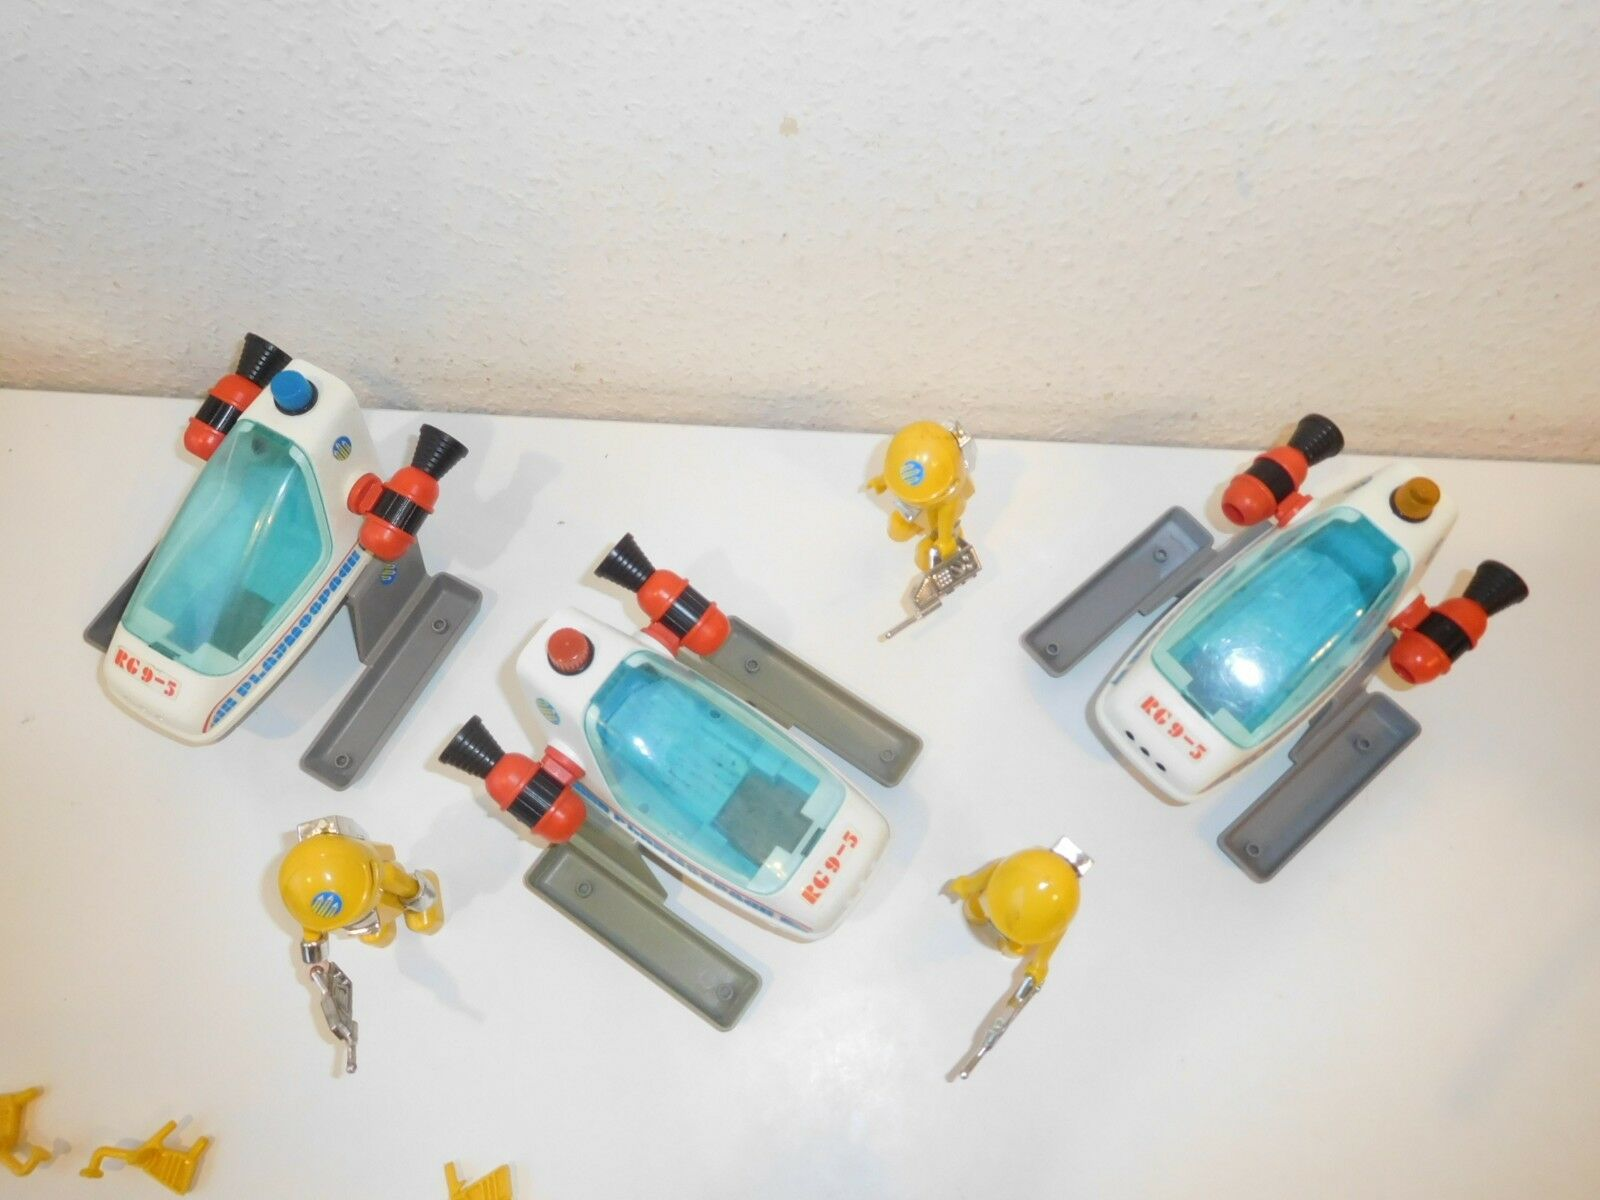 3 X Playmobil Playmobil Playmobil 3509 playmospace playmo space 579224